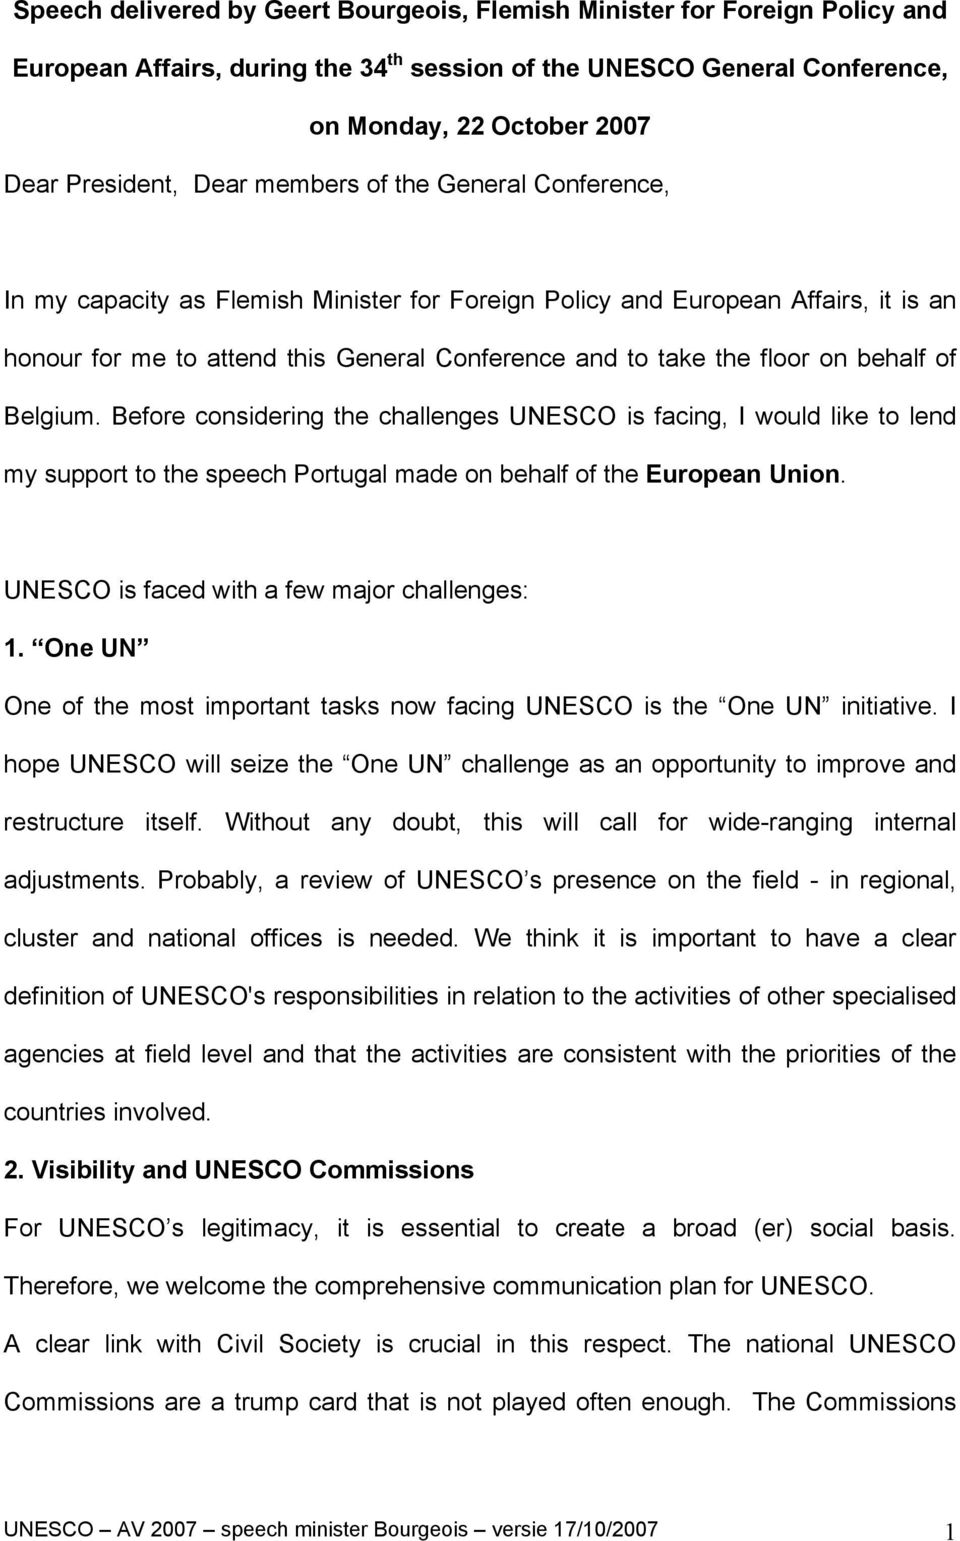 behalf of Belgium. Before considering the challenges UNESCO is facing, I would like to lend my support to the speech Portugal made on behalf of the European Union.